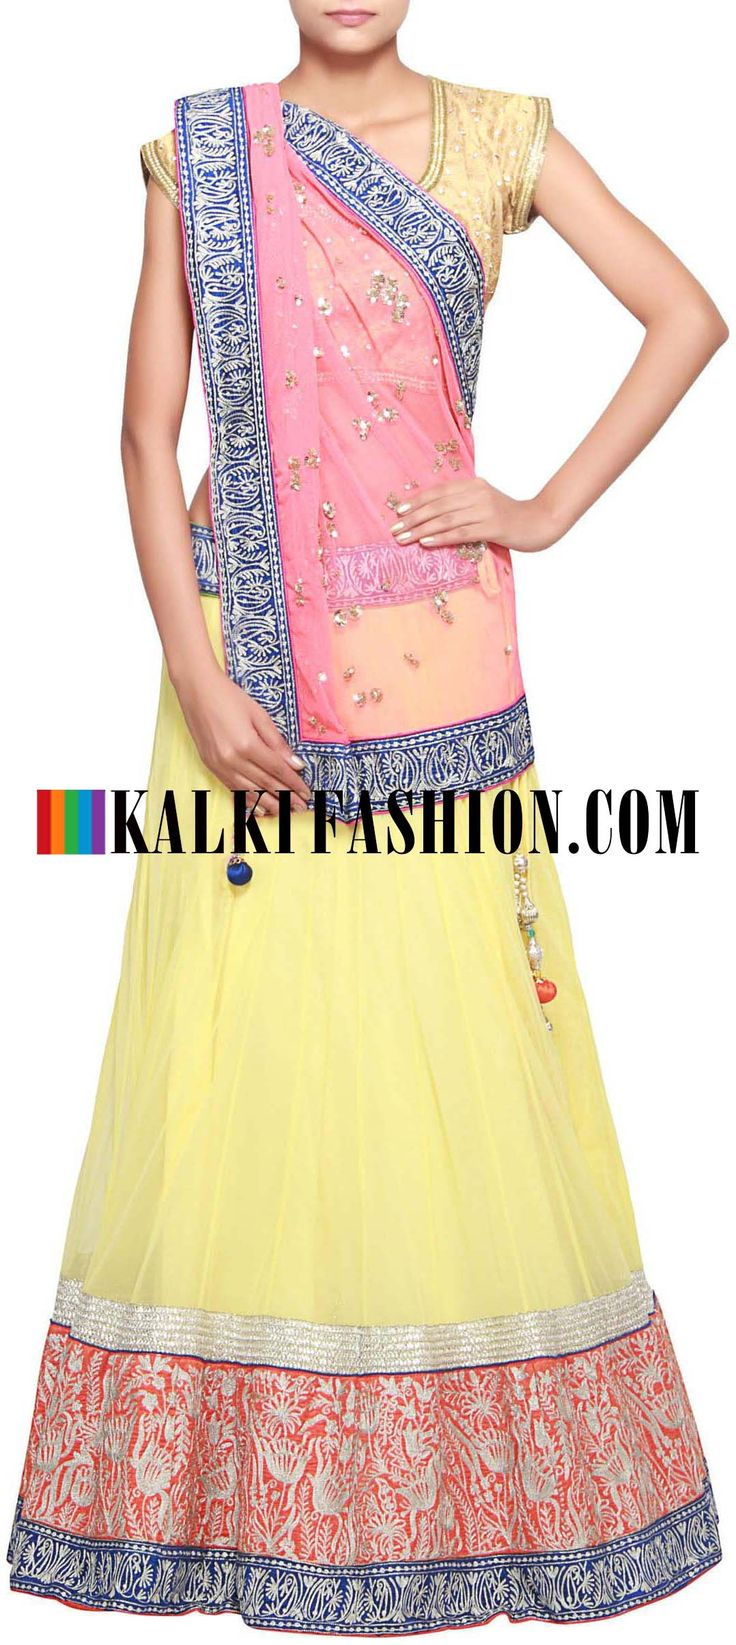 Get this beautiful lehenga here: http://www.kalkifashion.com/pink-lehenga-adorn-in-zari-and-sequence-embroidery-only-on-kalki-12338.html Free shipping worldwide.